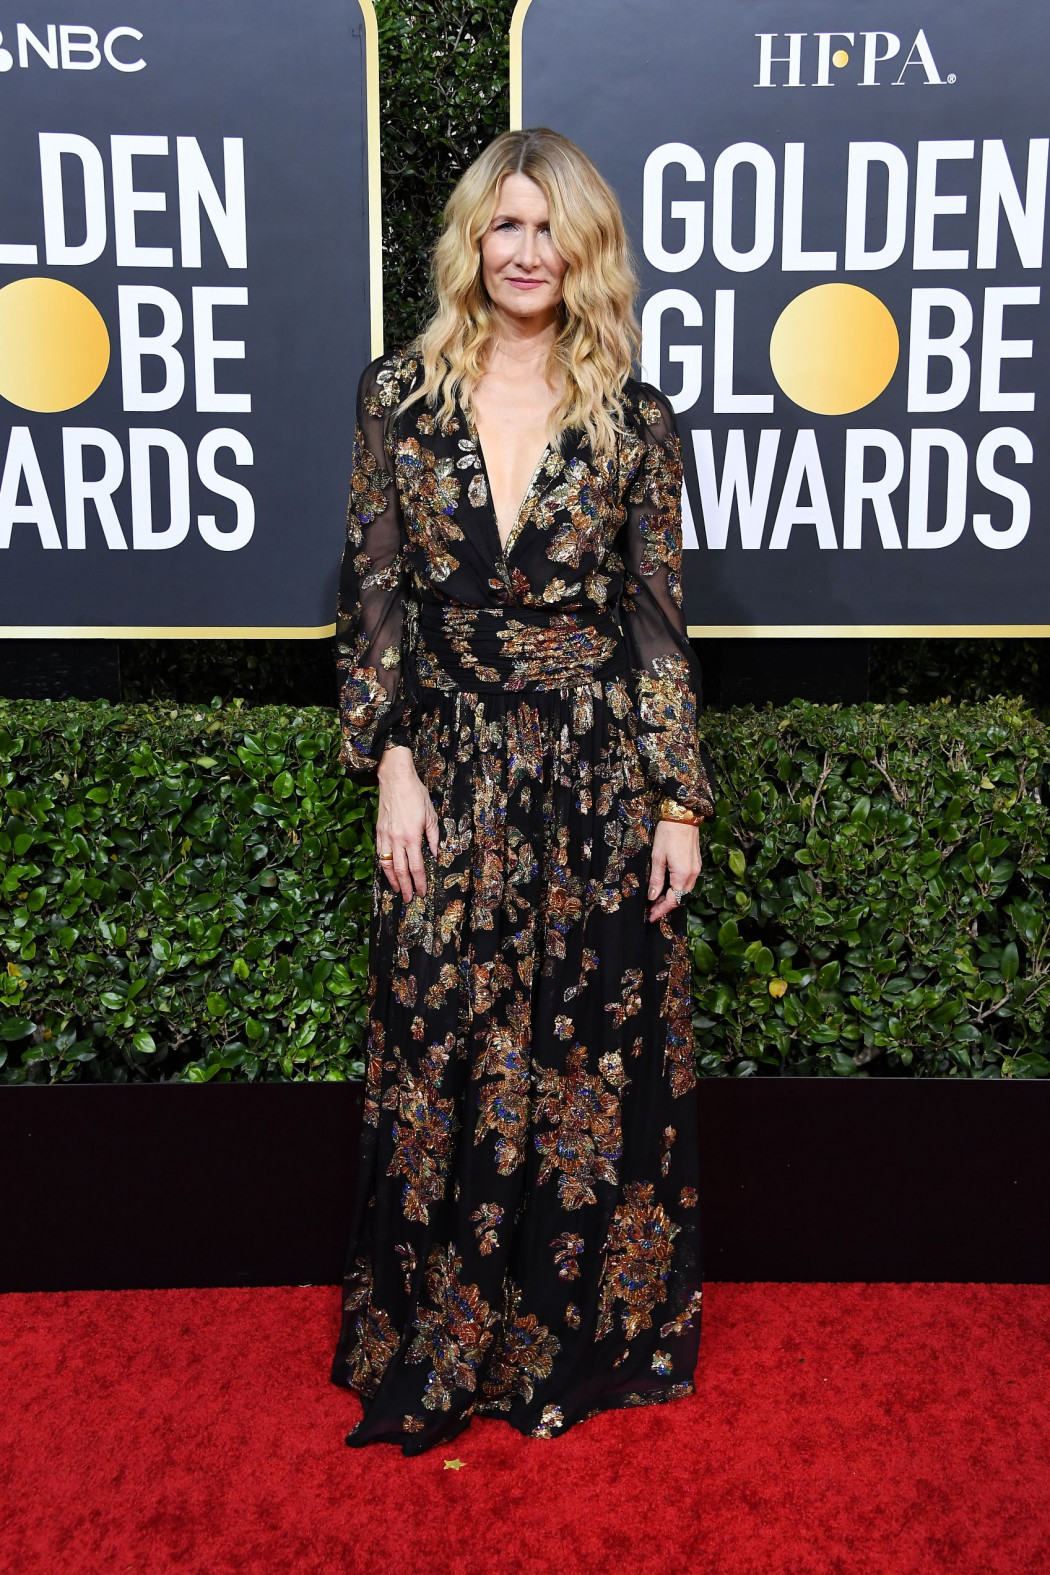 Golden Globes 2020 : les plus beaux looks du tapis rouge - 30